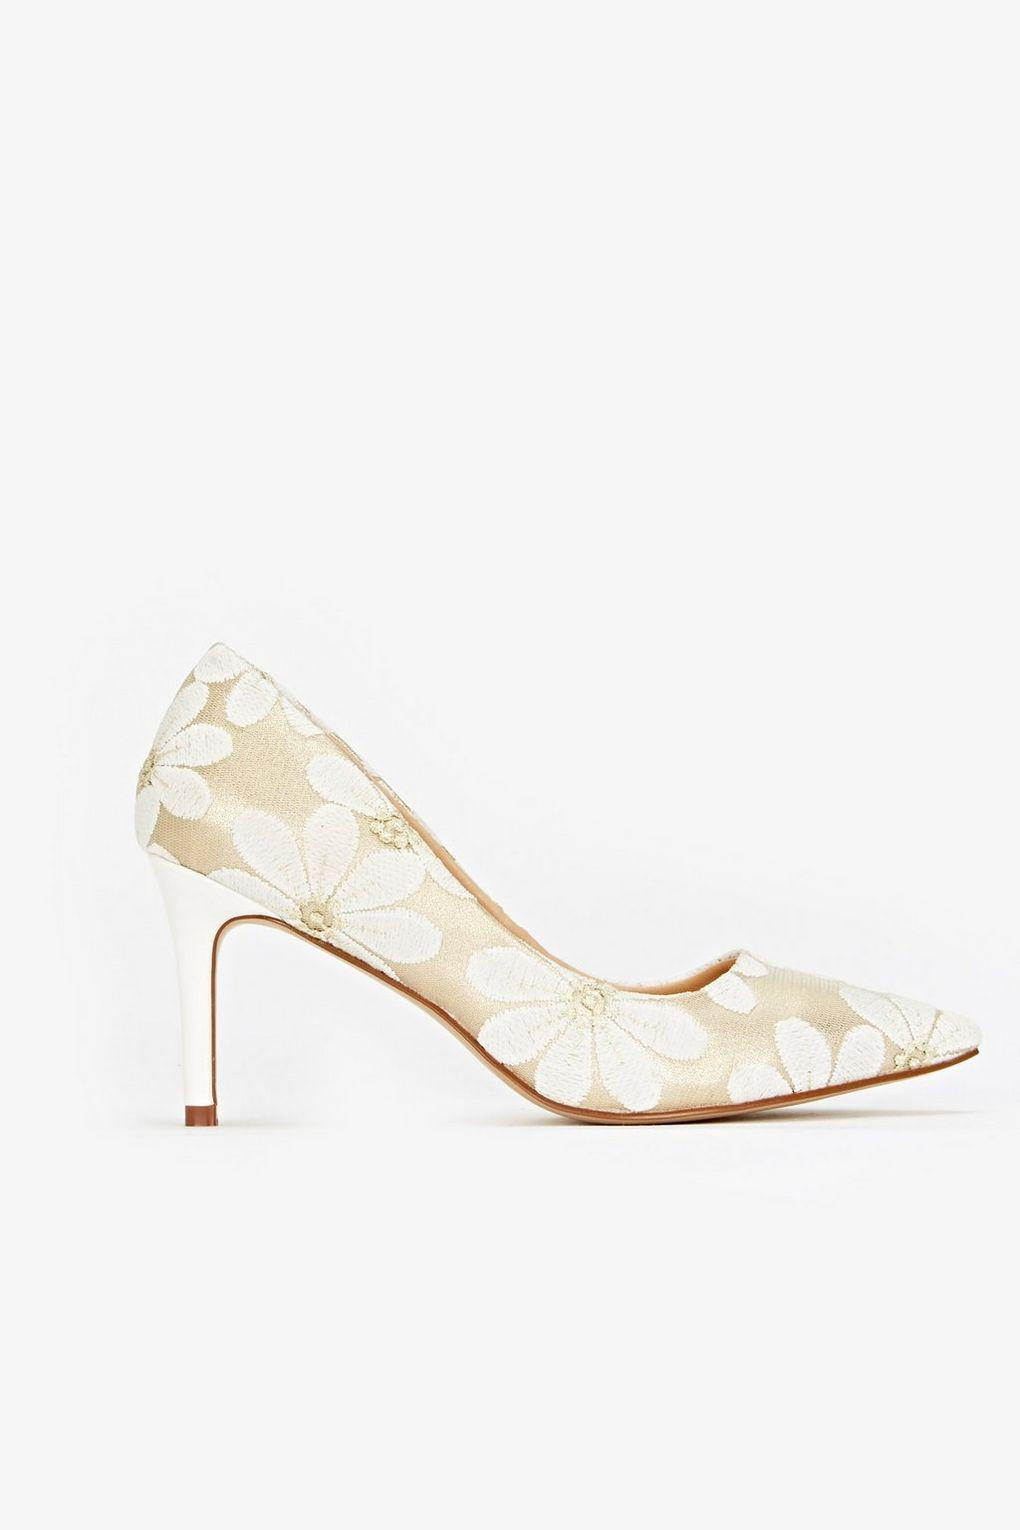 845af0a8a Wallis White Floral Mesh Pointed Heel Court Shoe in White - Lyst